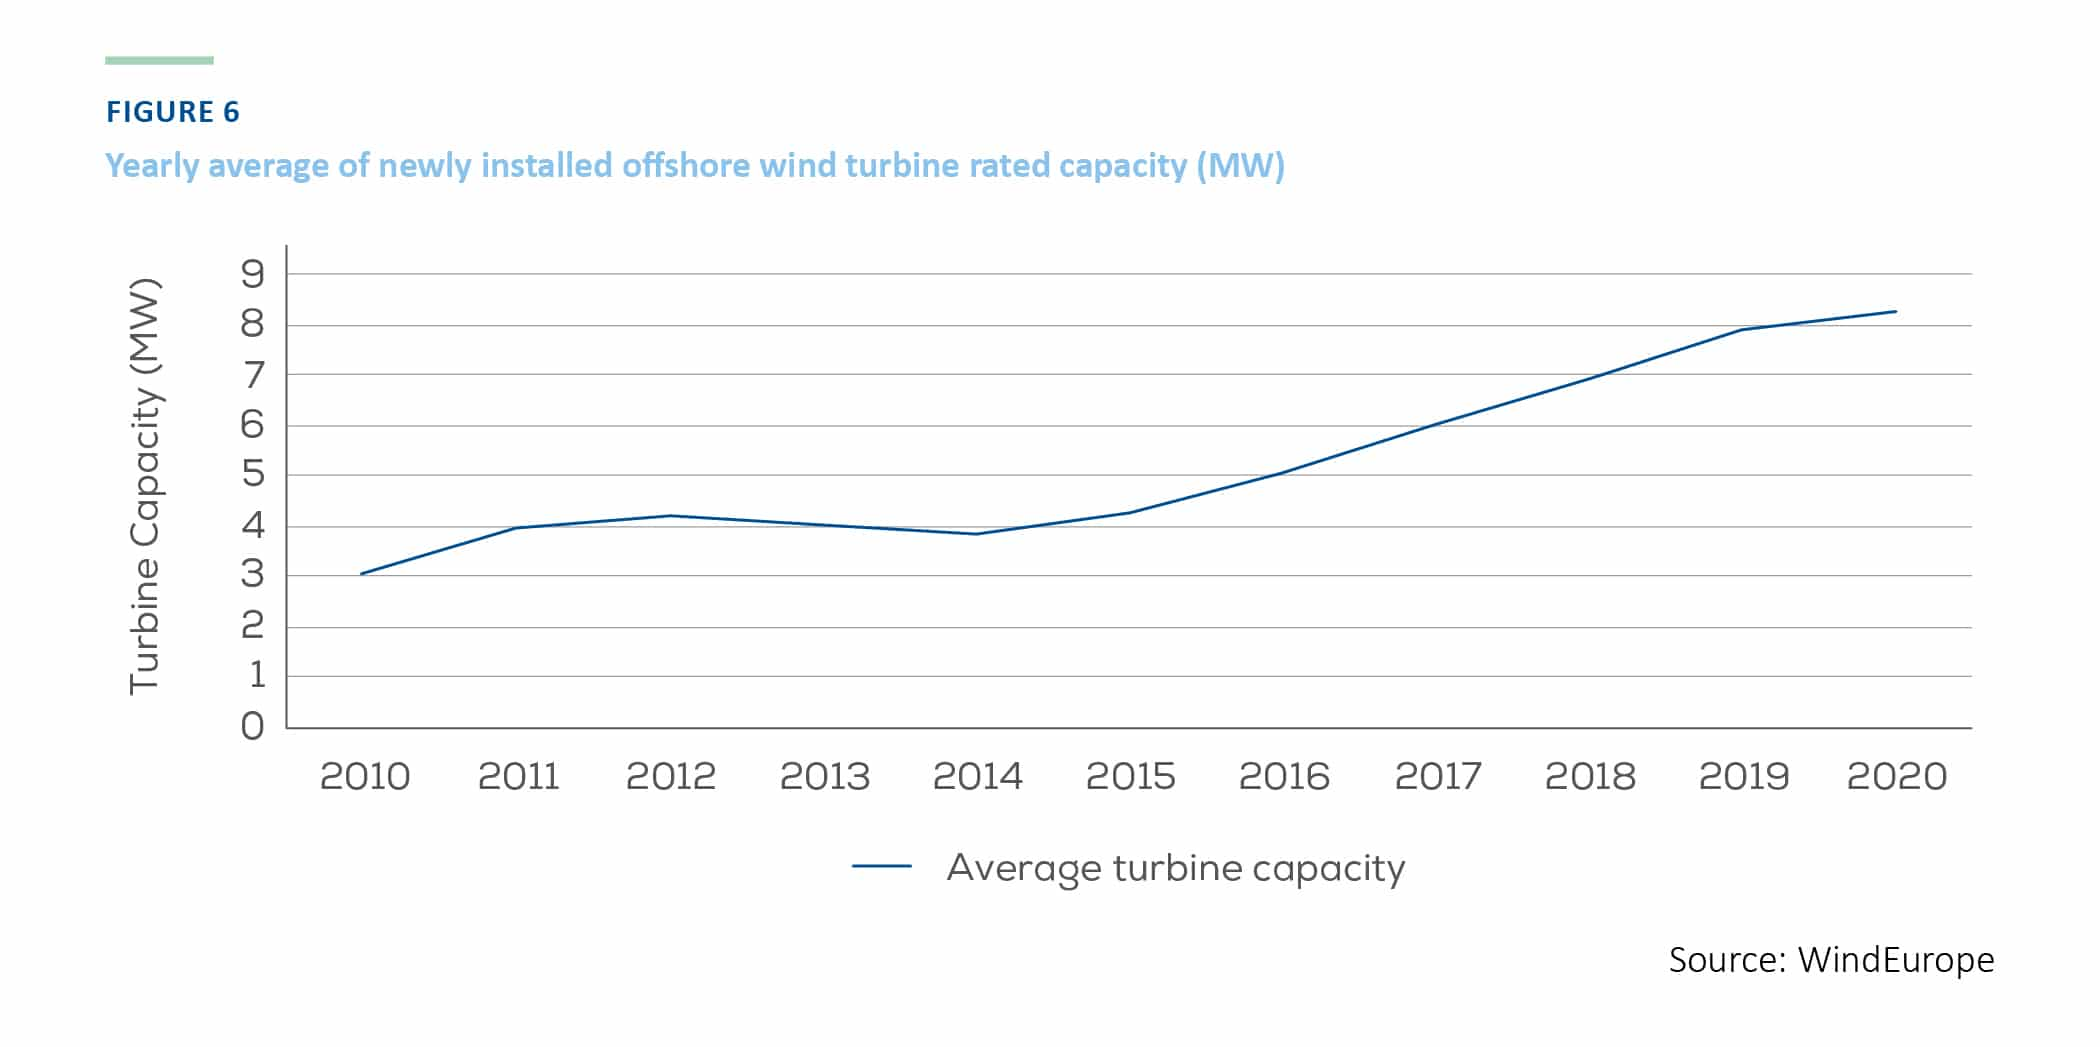 Yearly average of newly installed offshore wind turbine rated capacity (MW)